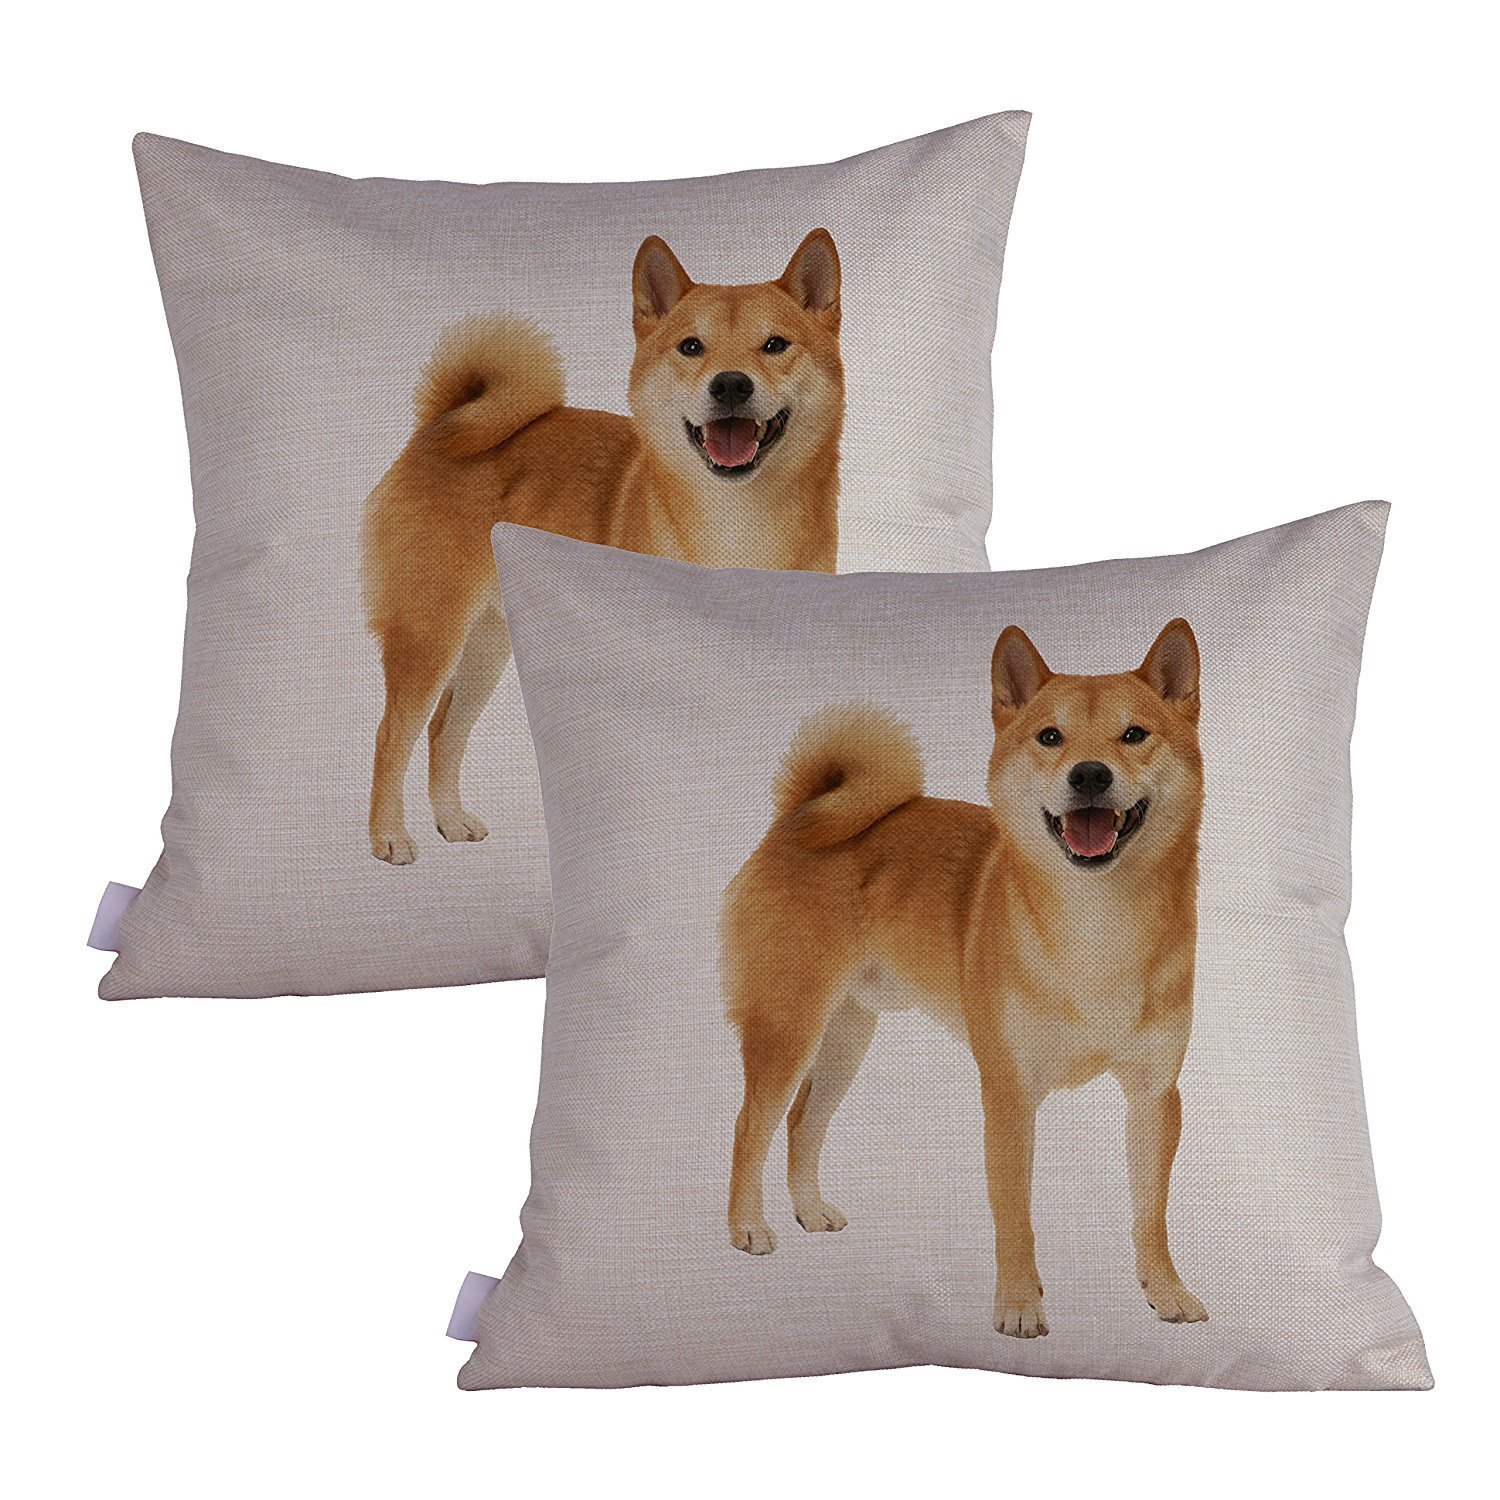 Show Fido some love by putting his face on a pillow. - $